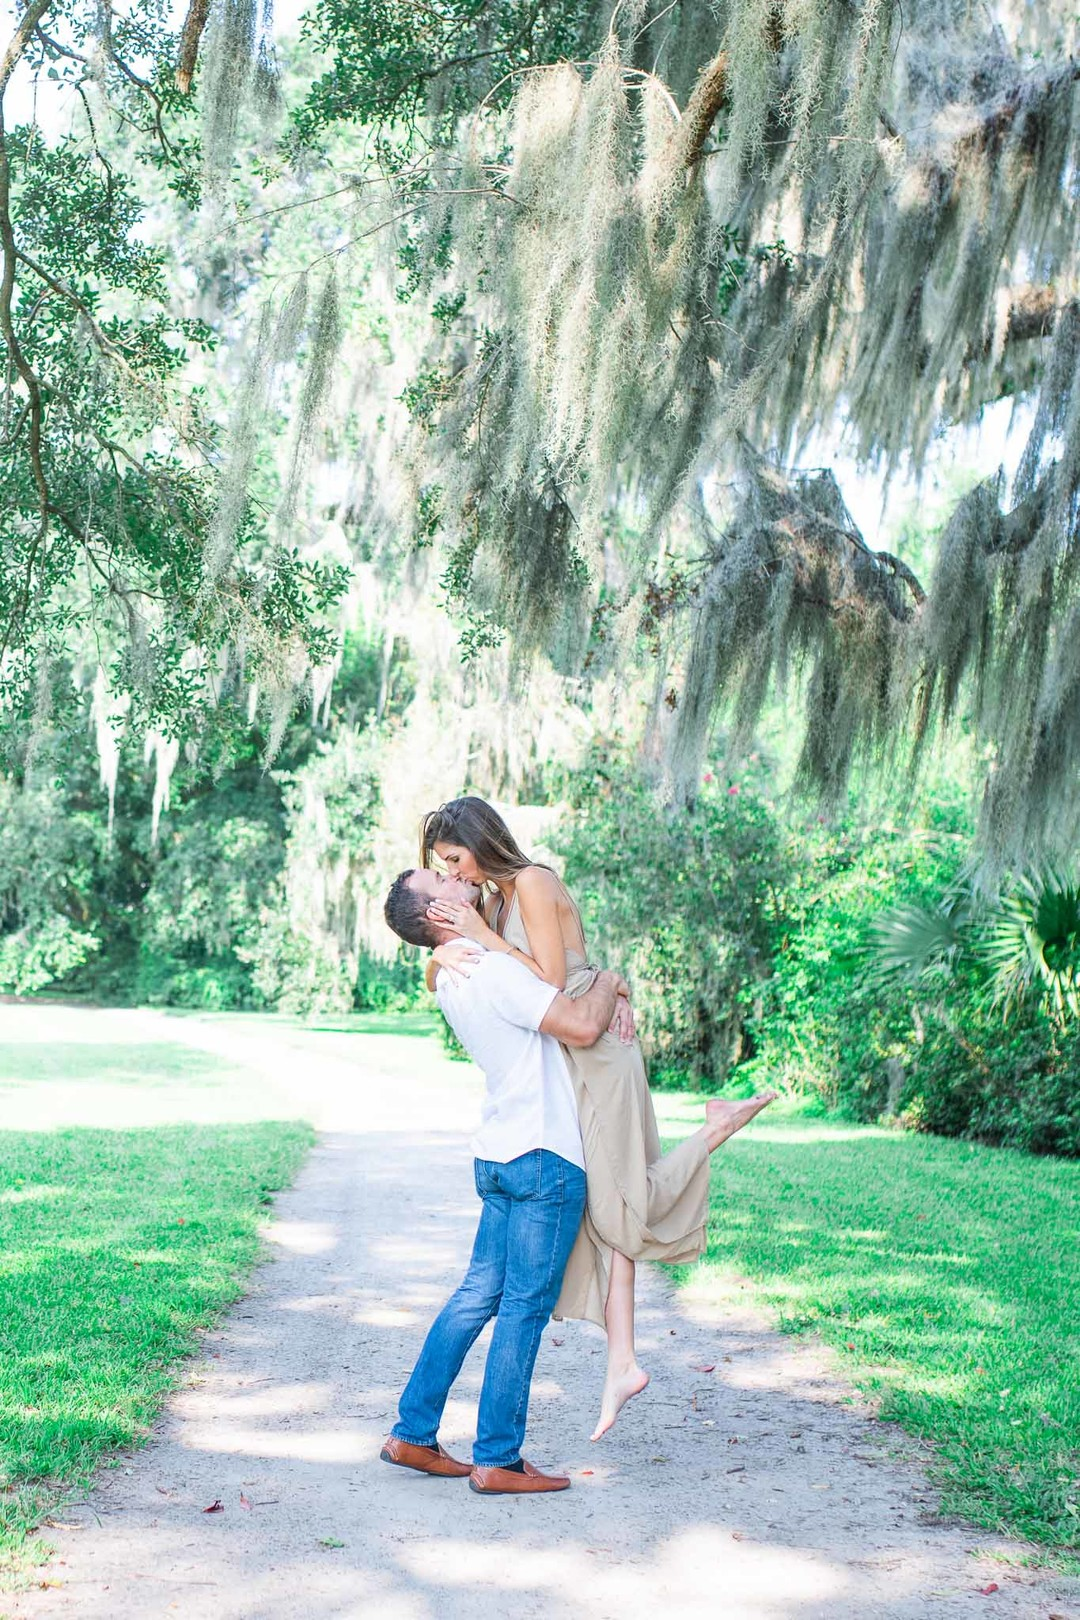 Lauren + Zac: Captivating Garden Engagement Session at Magnolia Plantation | Palmetto State Weddings